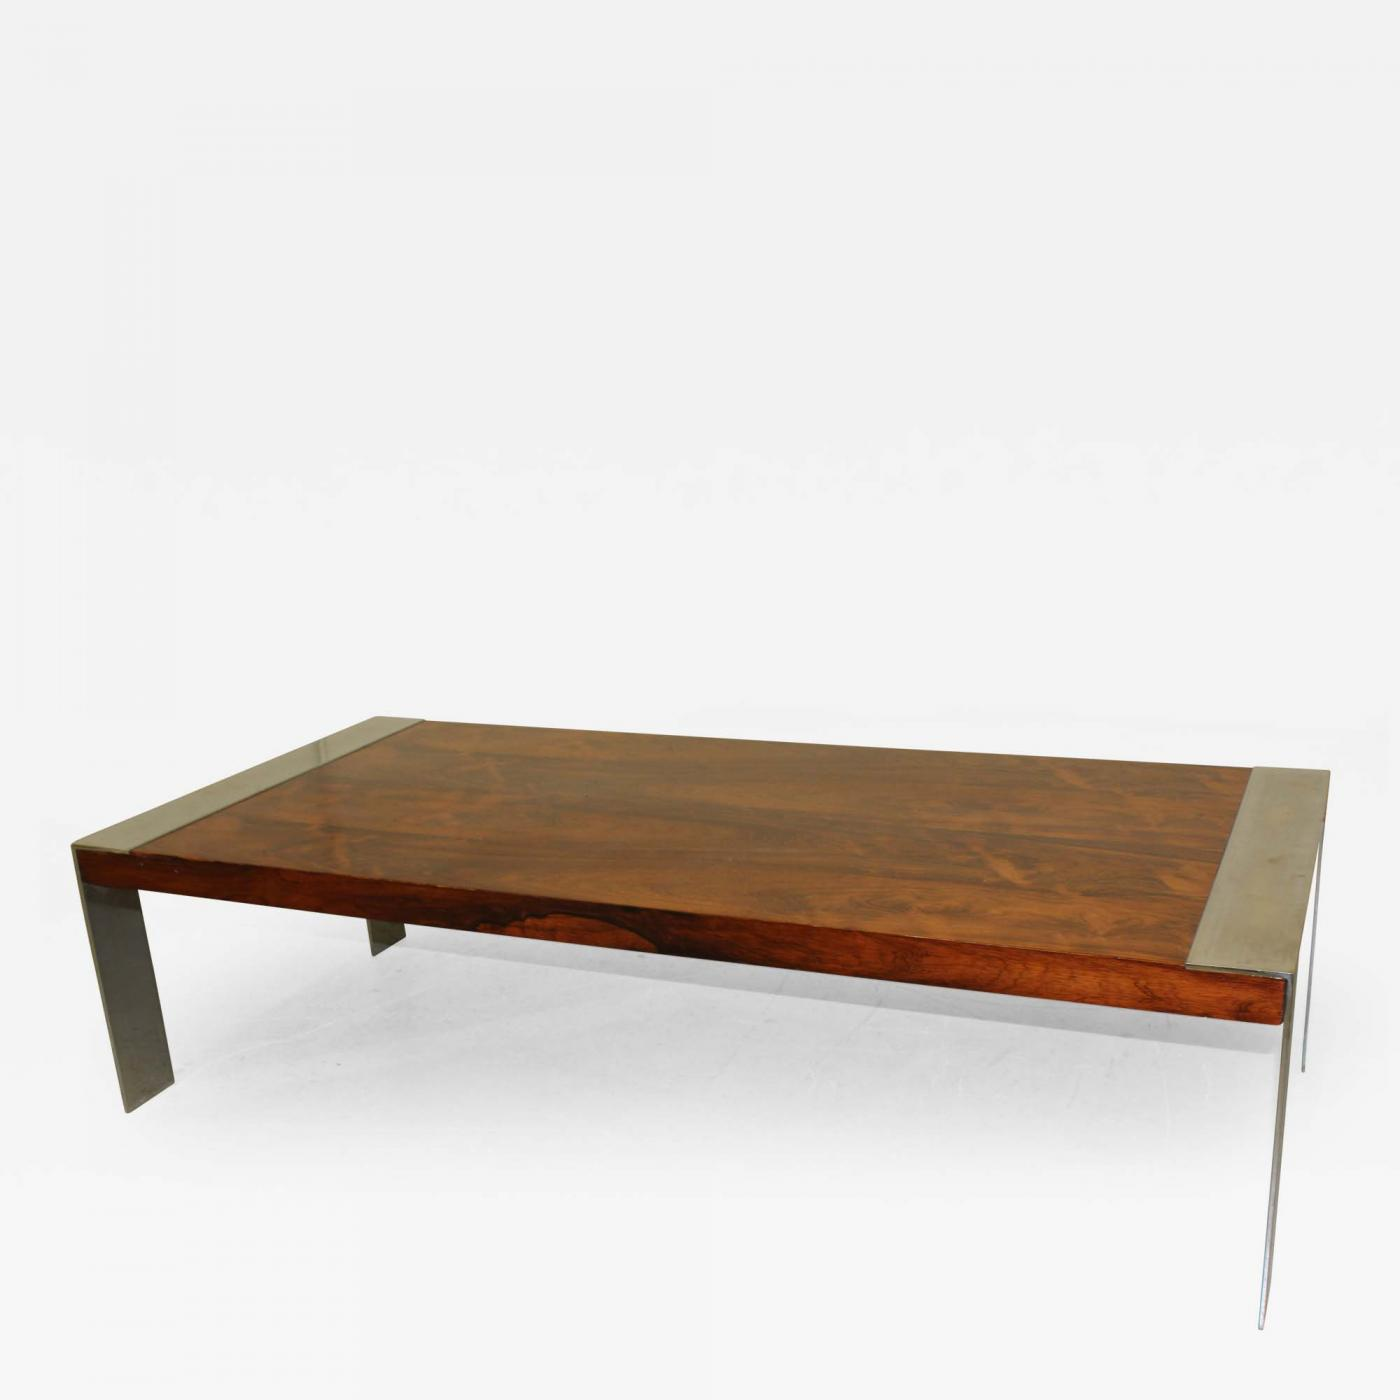 Milo baughman mid century modern coffee table - Modern coffee table ...